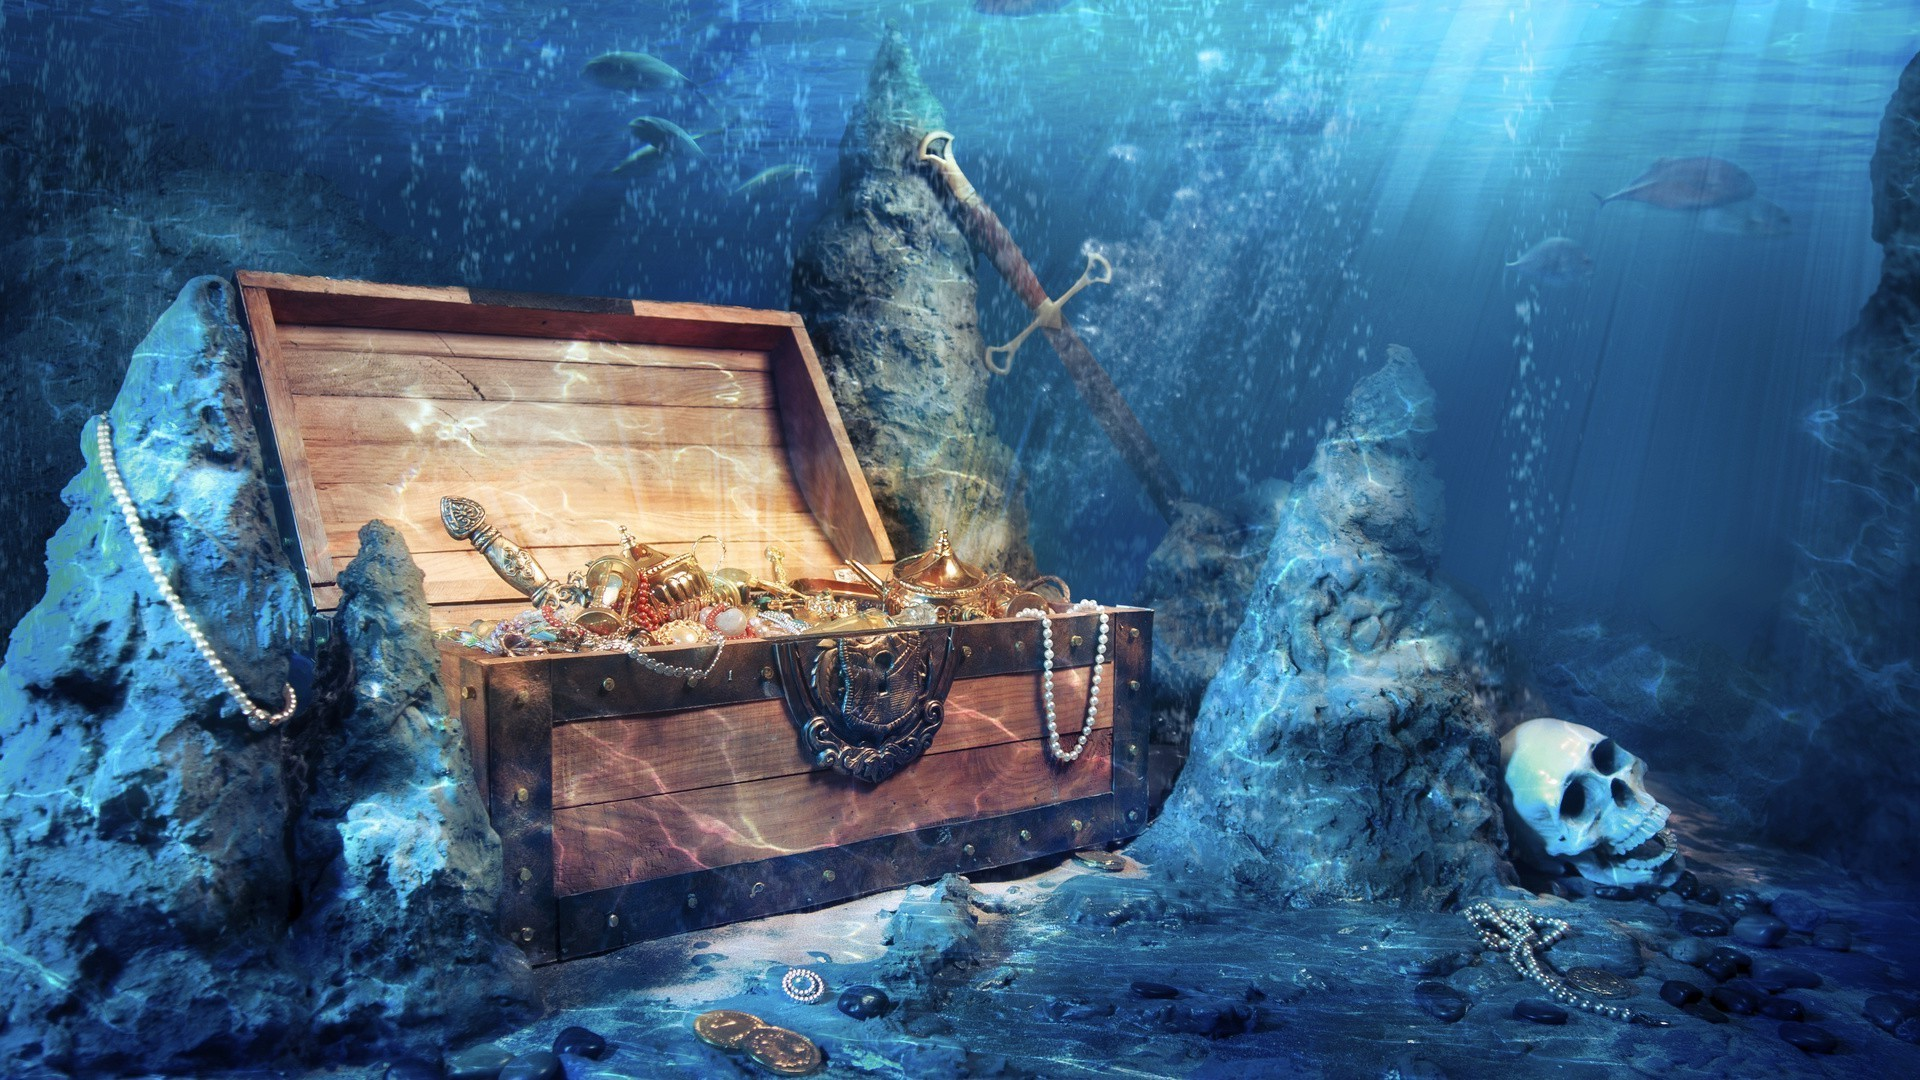 Shipwreck Wallpaper 68 pictures